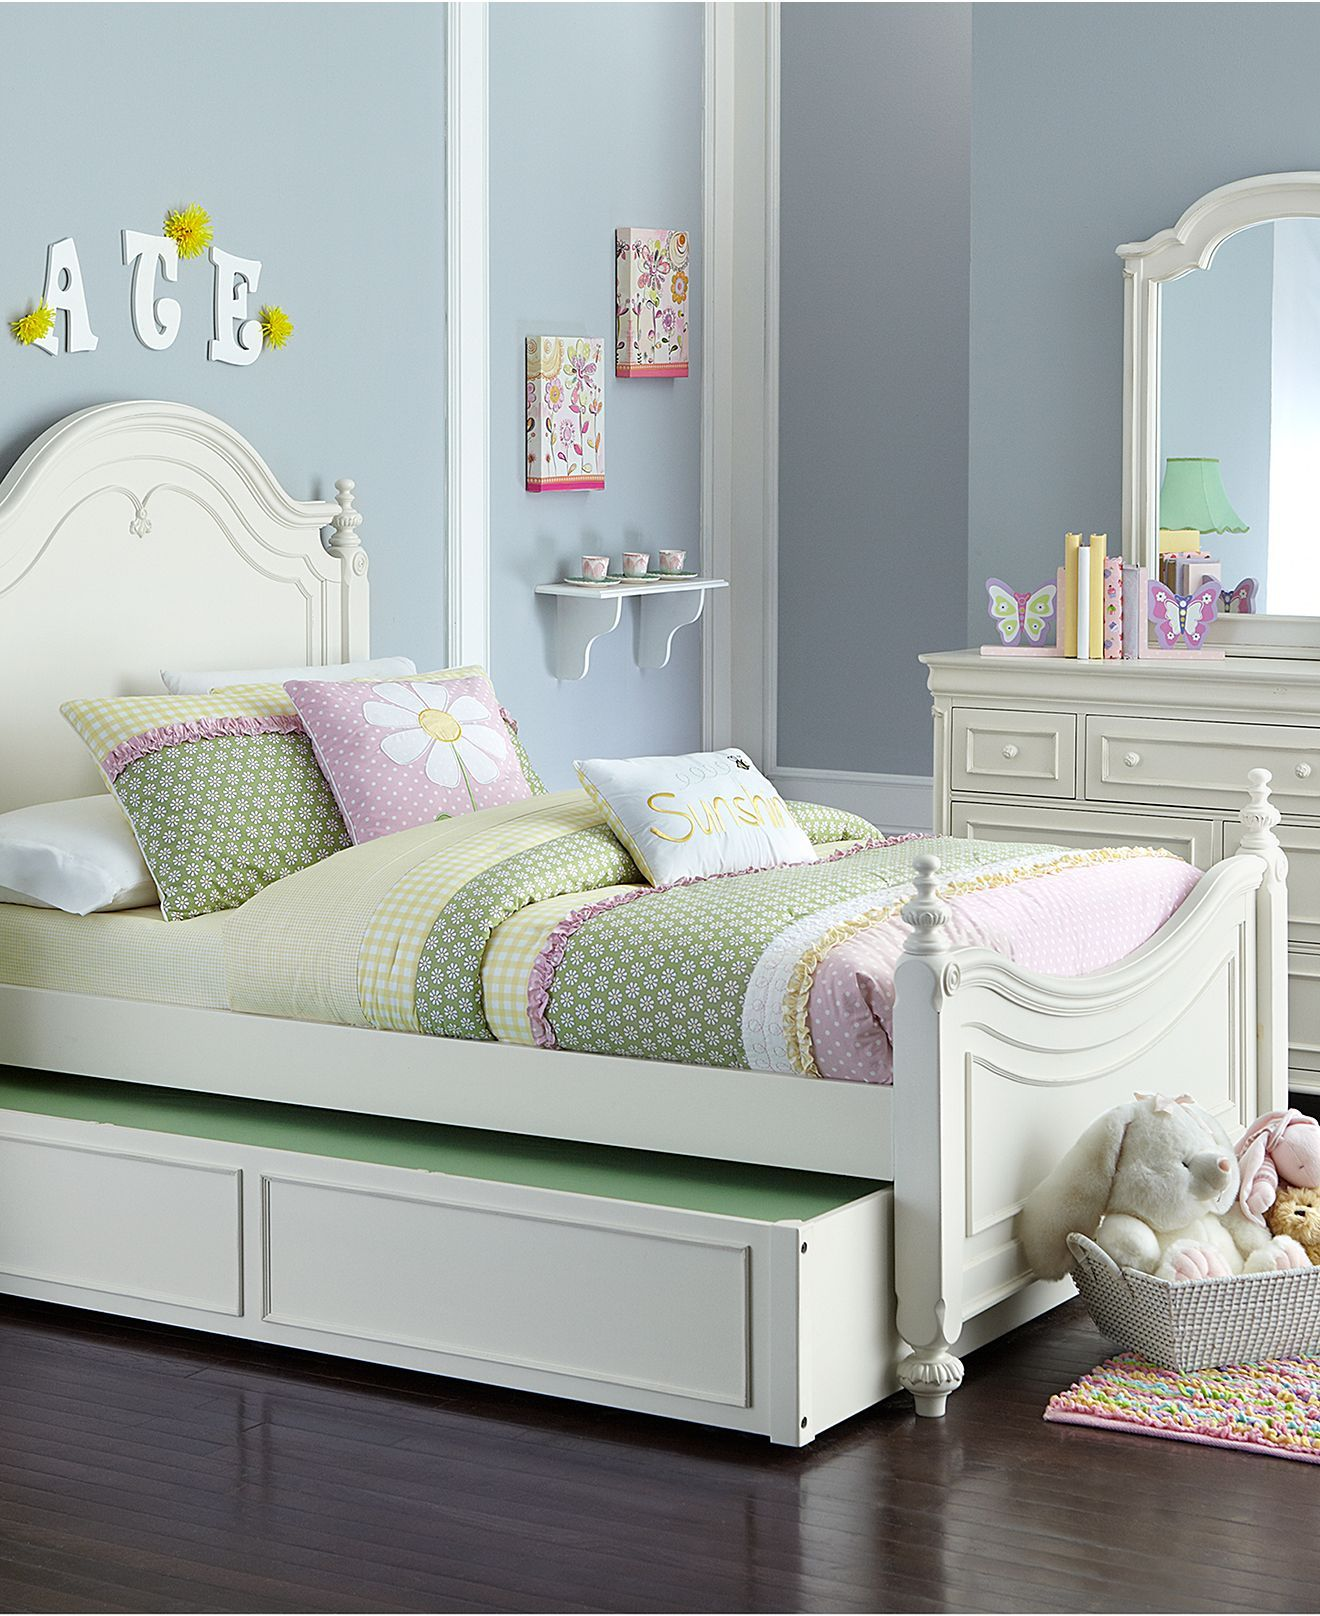 Adley Kids Bed Twin Poster Bed Beds Furniture Macy S Juliet